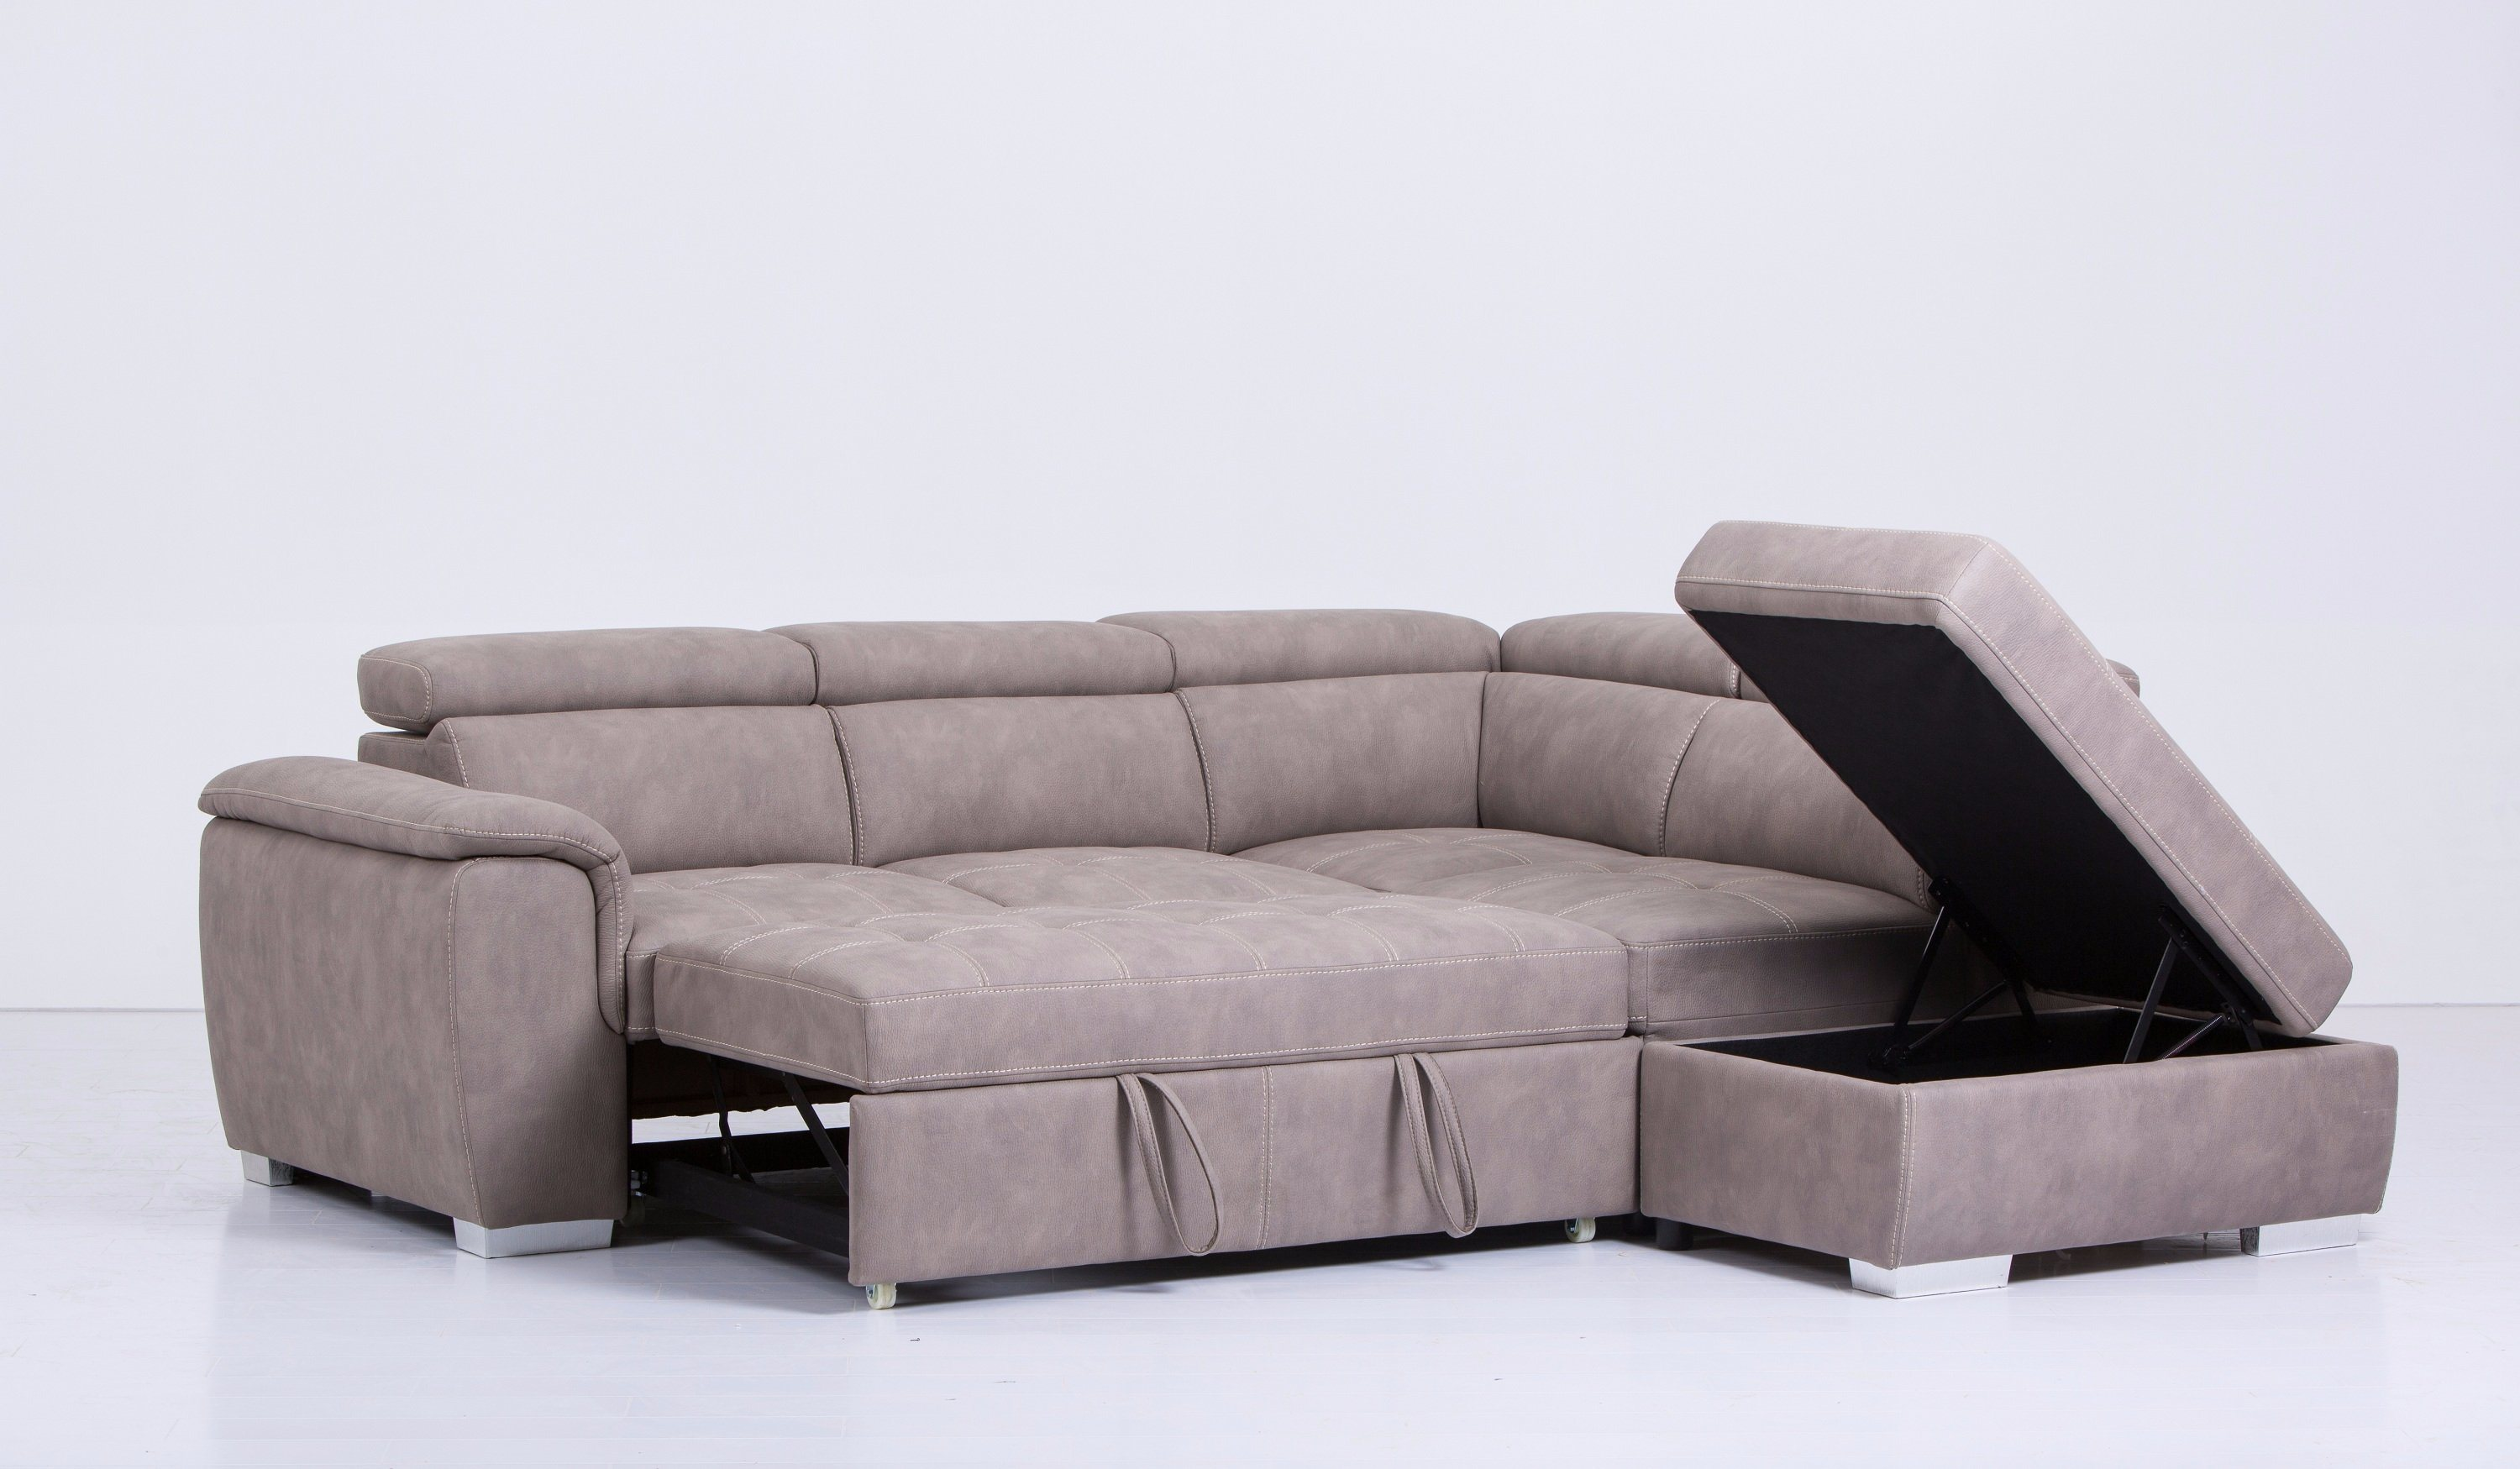 [Hot Item] L-Shape Sectional Leather Sofa Bed with Storage